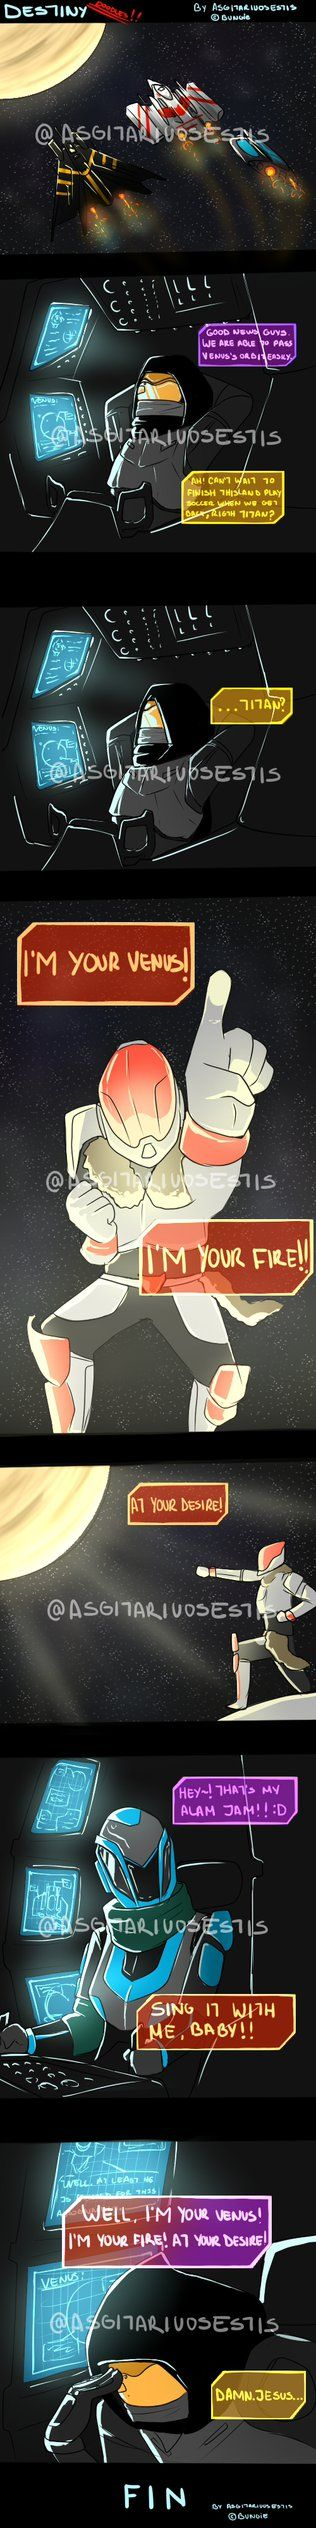 I heard the trailer song from Destiny in my Spotify, and so I made this doodle. I kind of like it very much, I was thinking if I should make more doodle random things of Destiny, since is one of th...